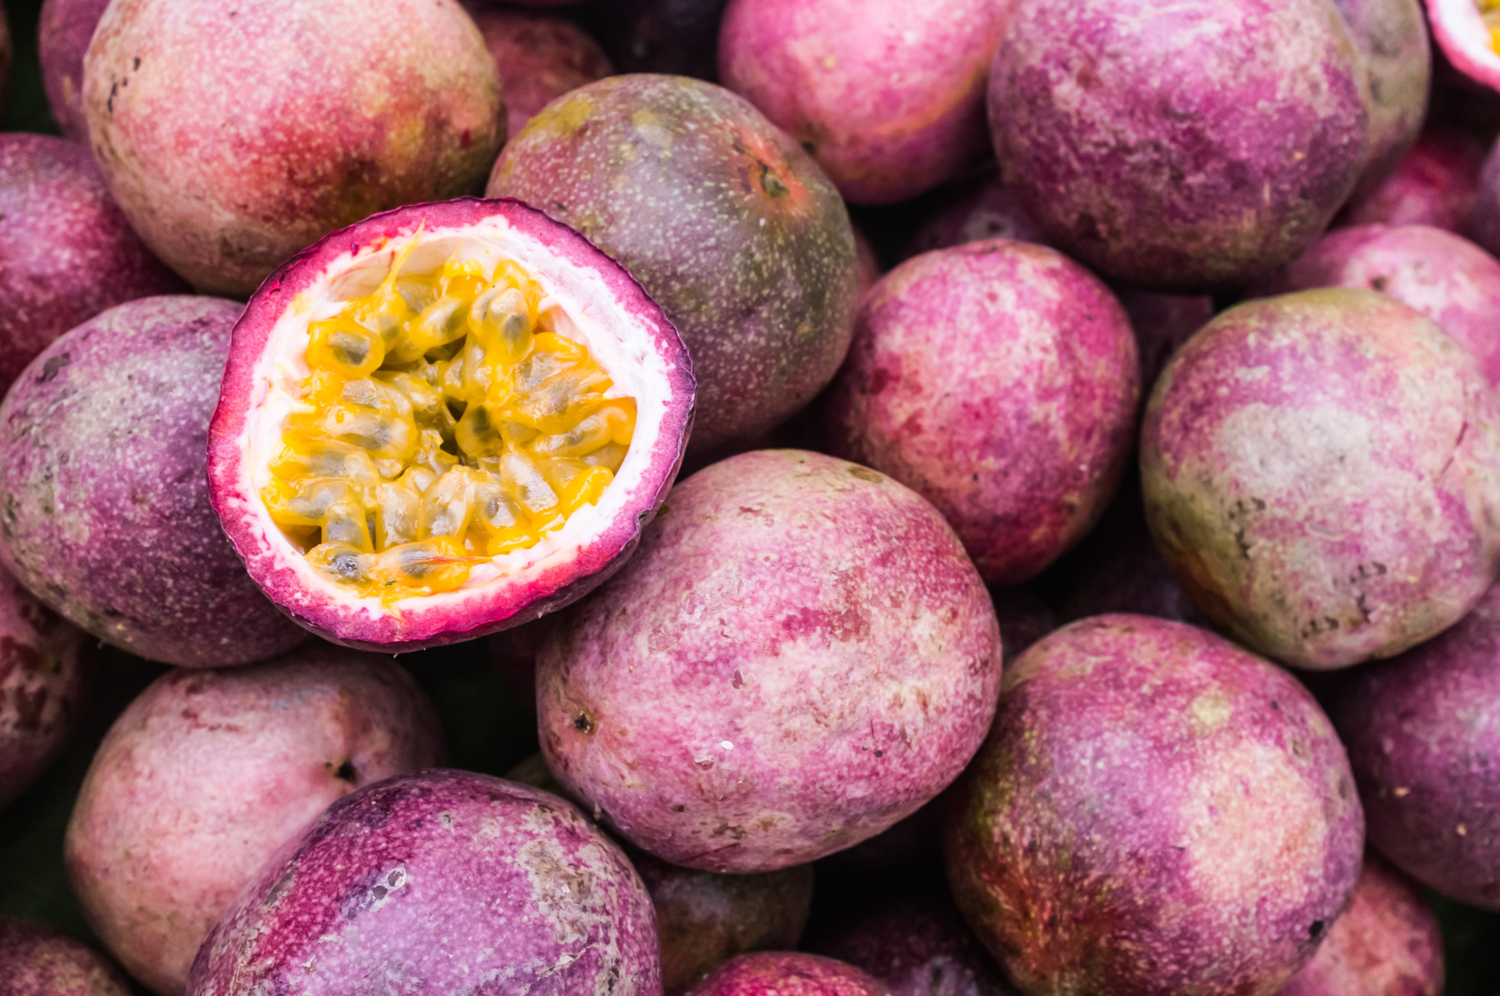 Red Passion Fruit - 8 plump fruits (or Equivalent 2lbs) box - Fresh - Aromatic & Flavorful - Florida Grown, Seasonal, Tropical